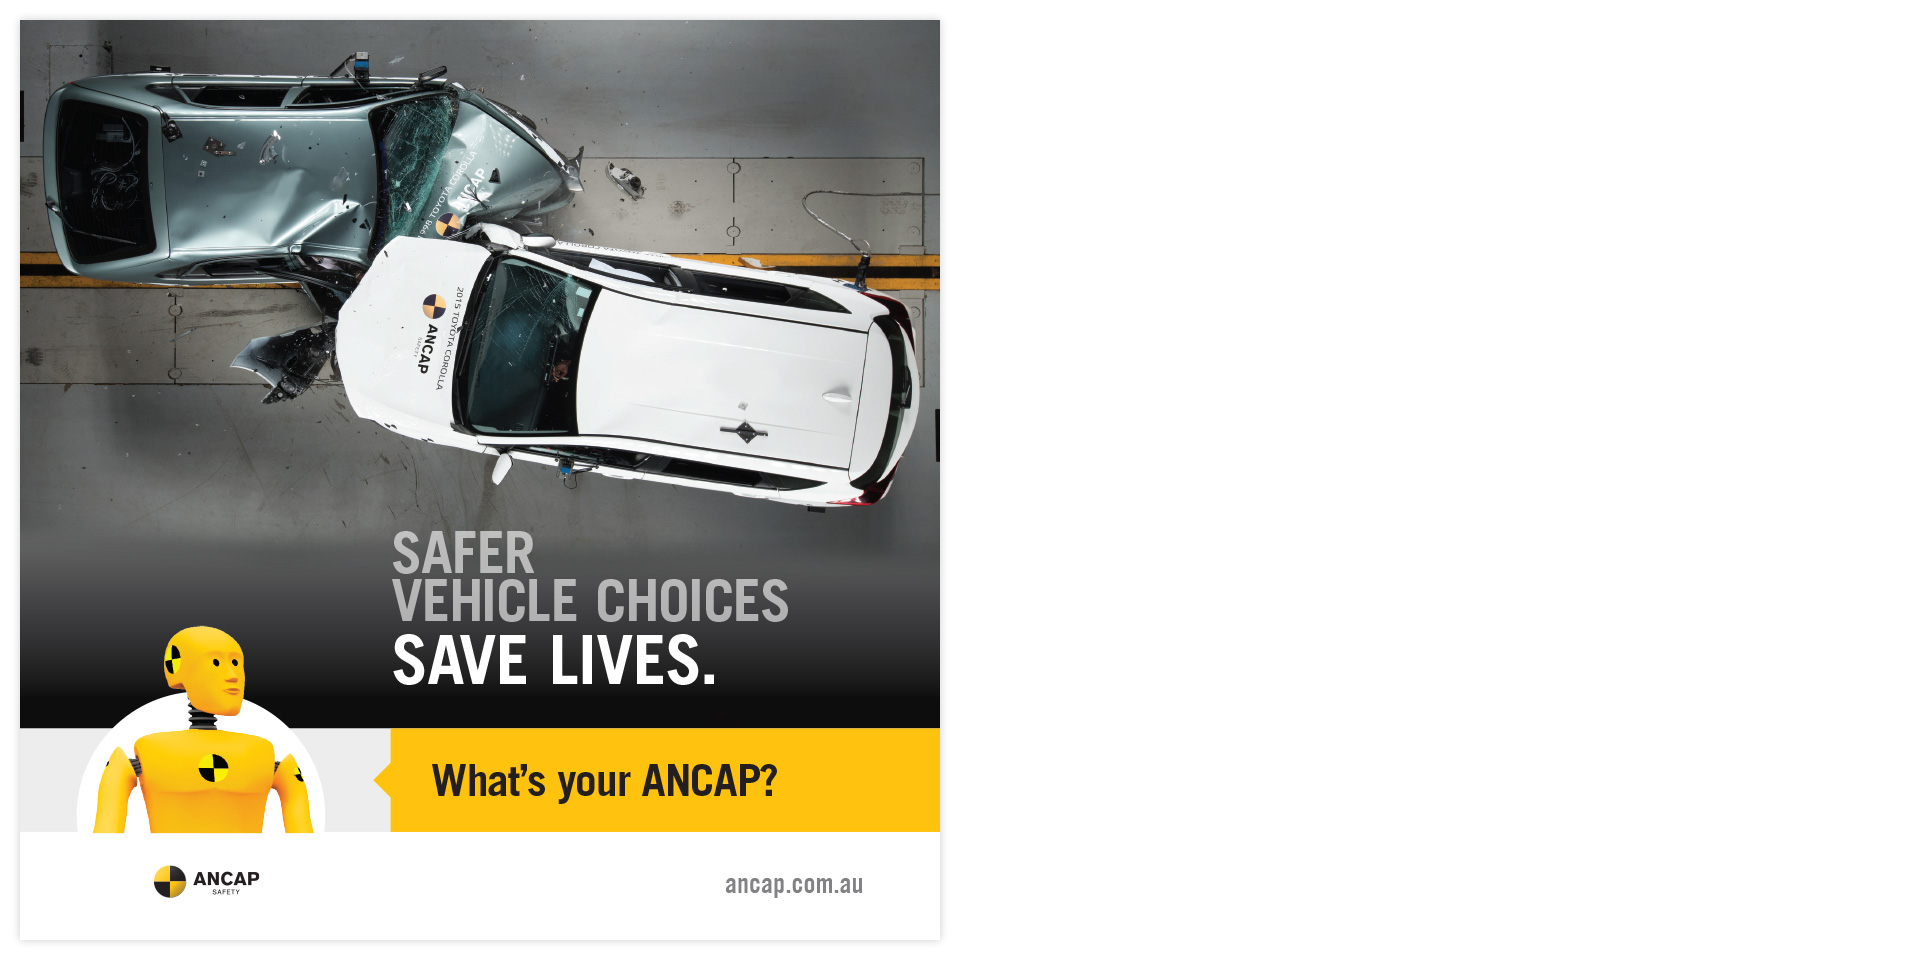 ANCAP bus back advertisement in a variety of formats